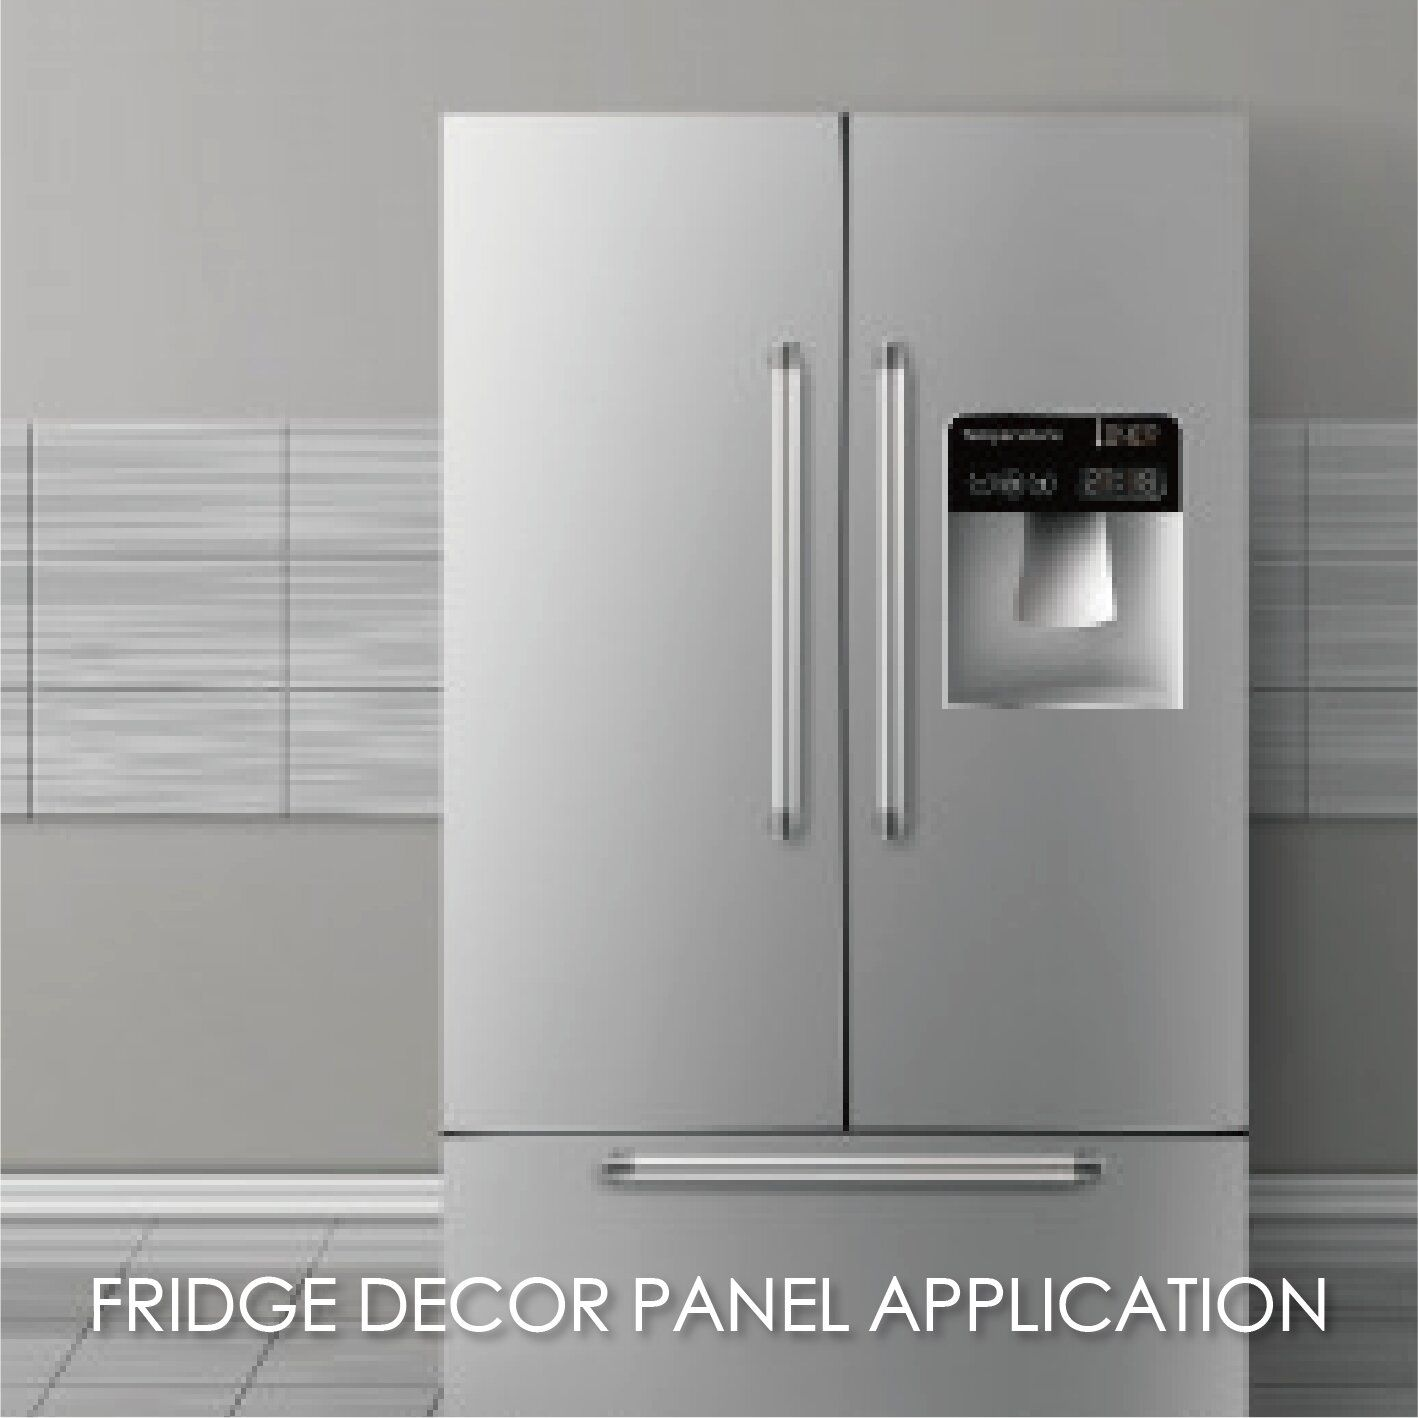 Making anti-fingerprint stainless steel for refrigerator panels can increase aesthetics and durability